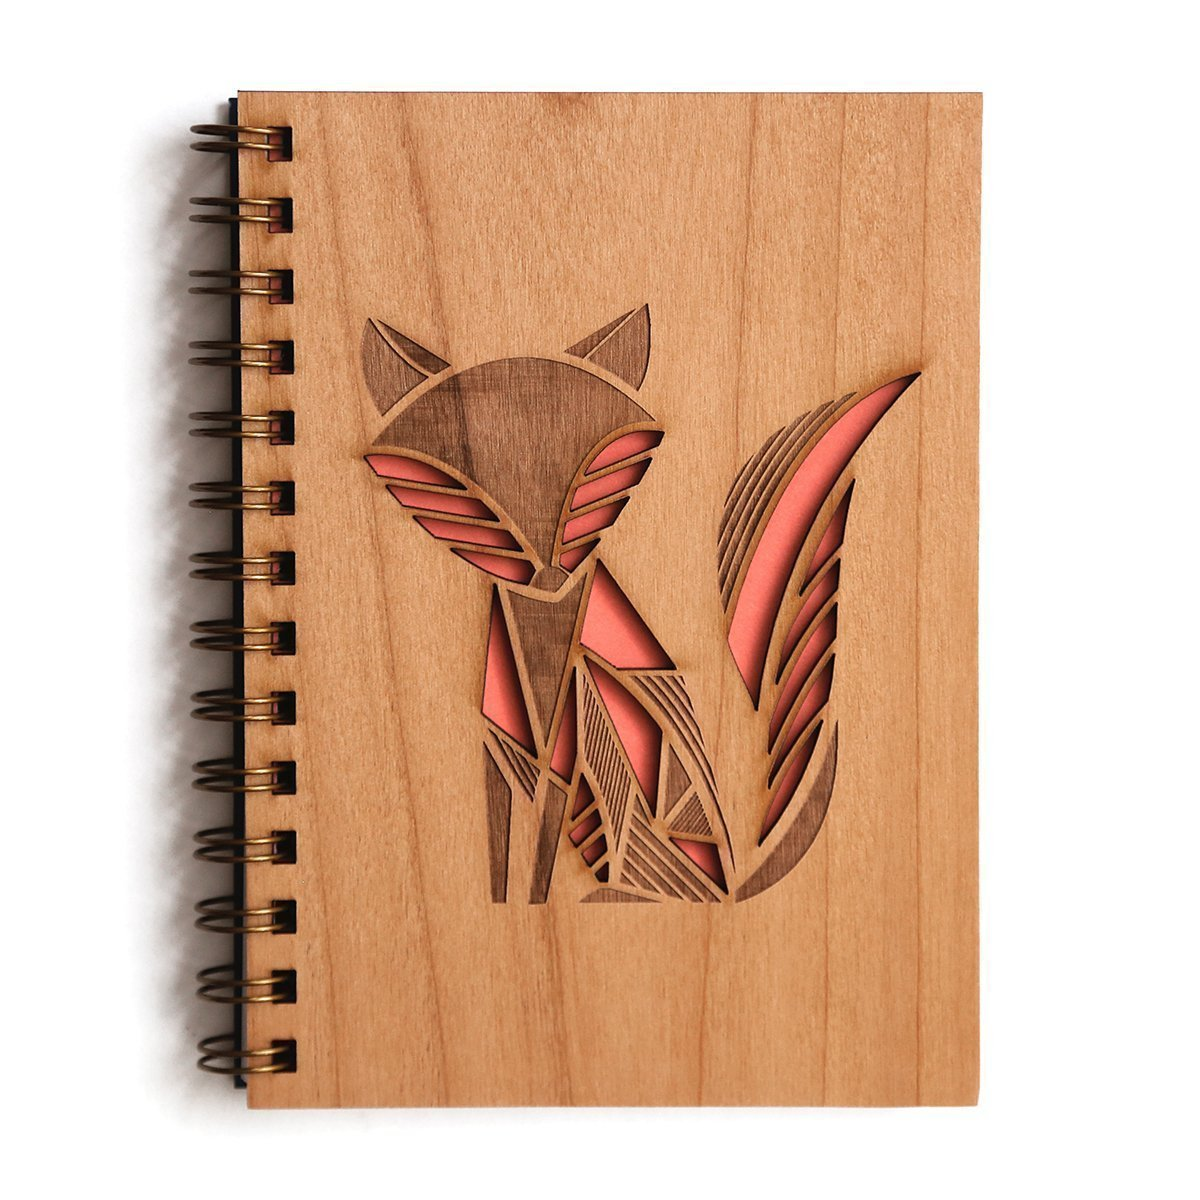 Fox Laser Cut Wood Journal (Notebook/Birthday Gift/Gratitude Journal/Handmade)